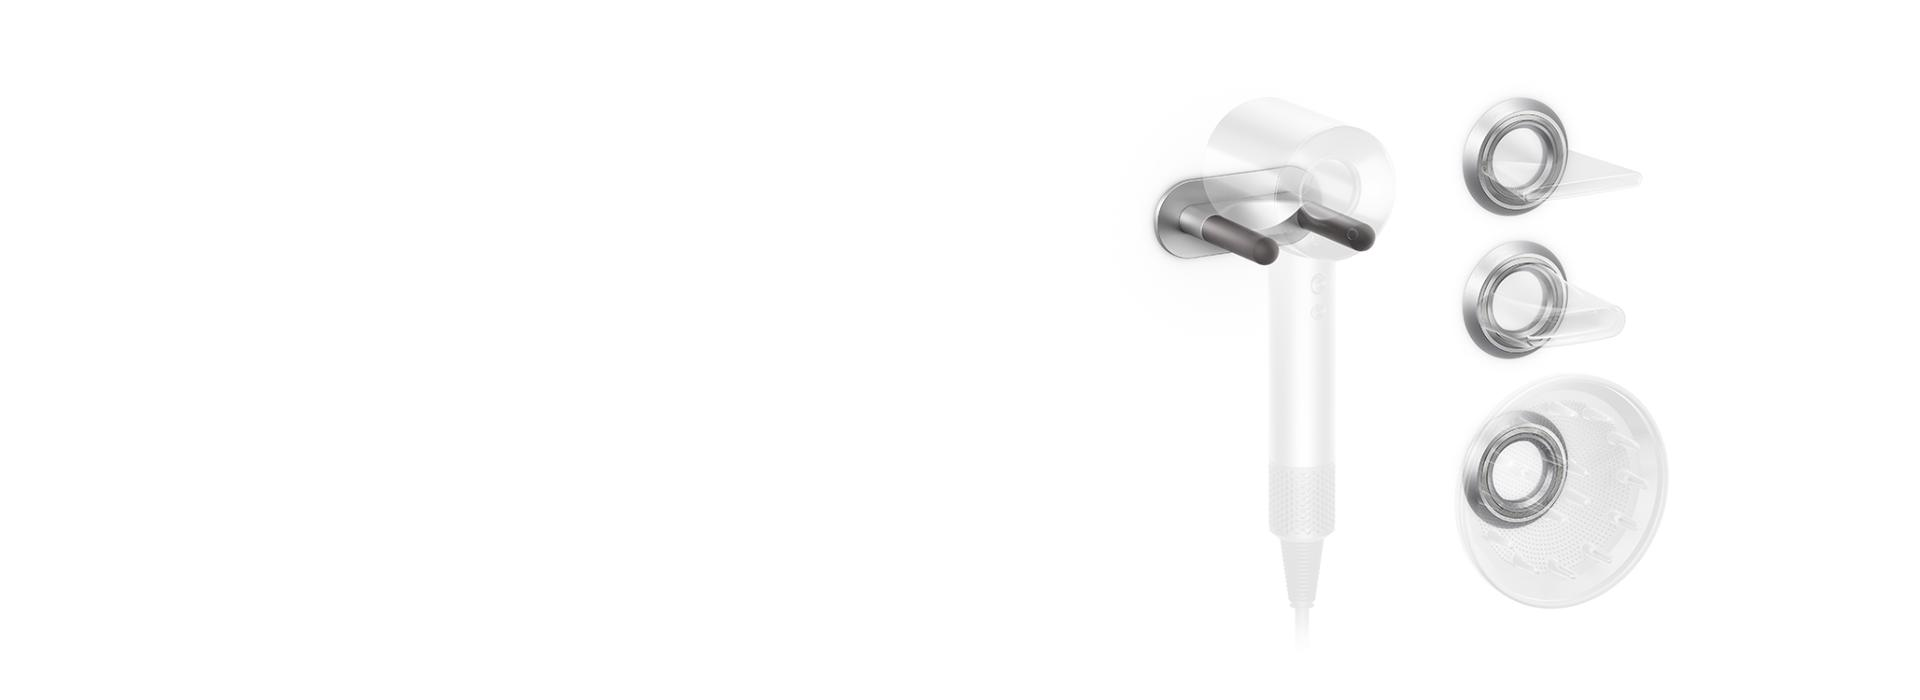 Dyson Supersonic™ hair dryer Wall cradle and magnetic attachment docks